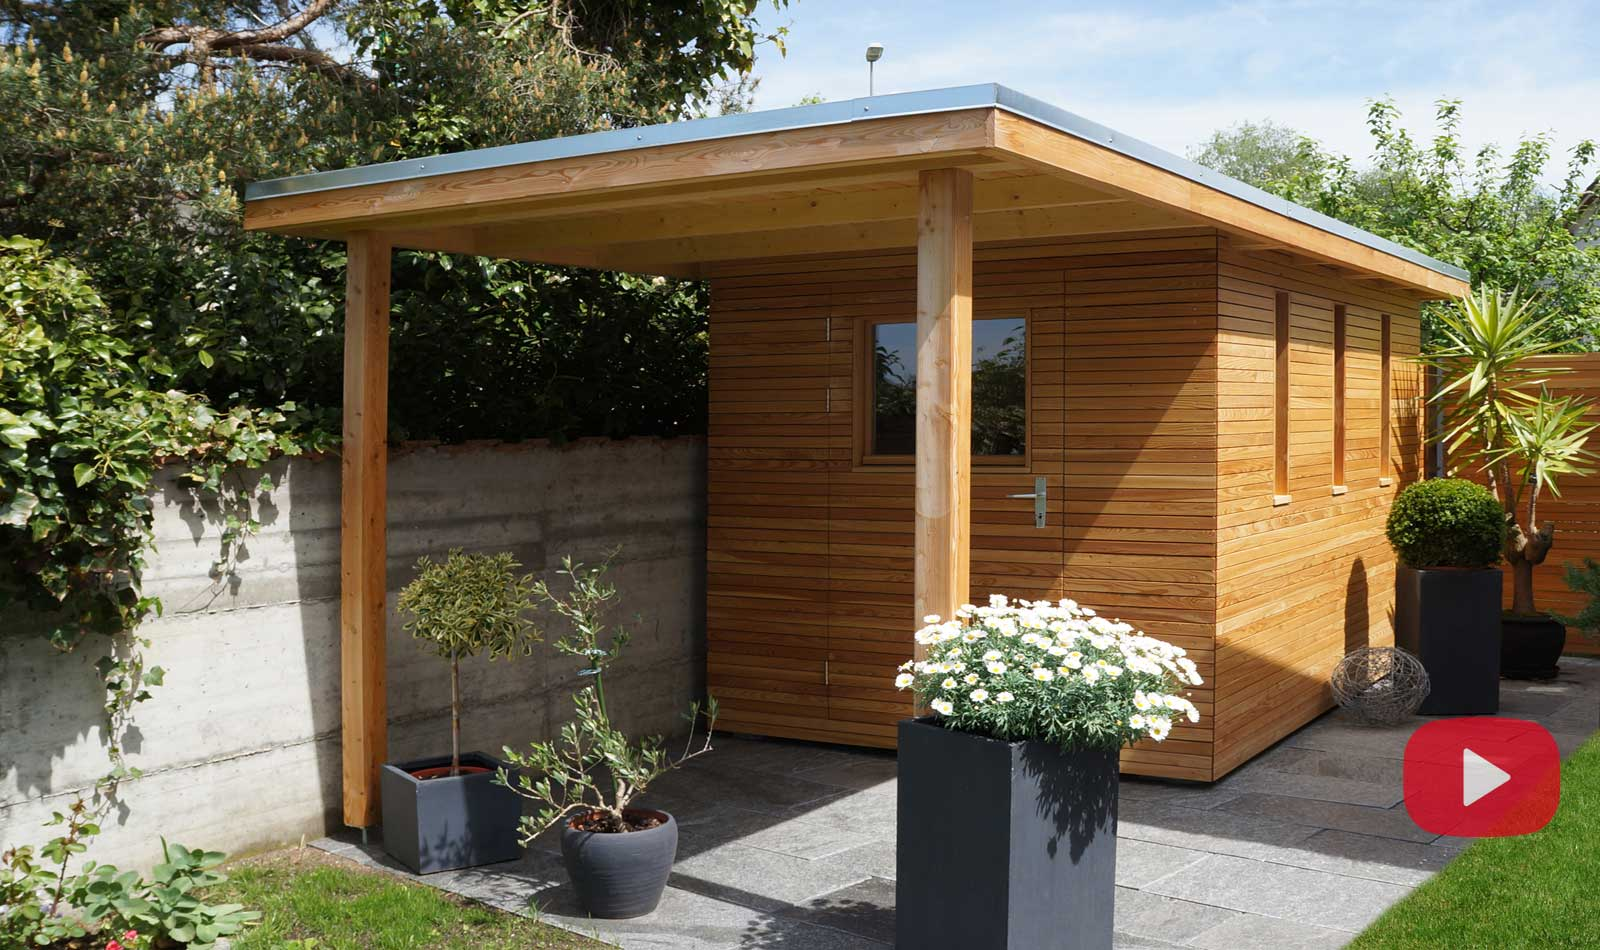 Wooden buildings and garden houses, made in Switzerland by Glovital AG